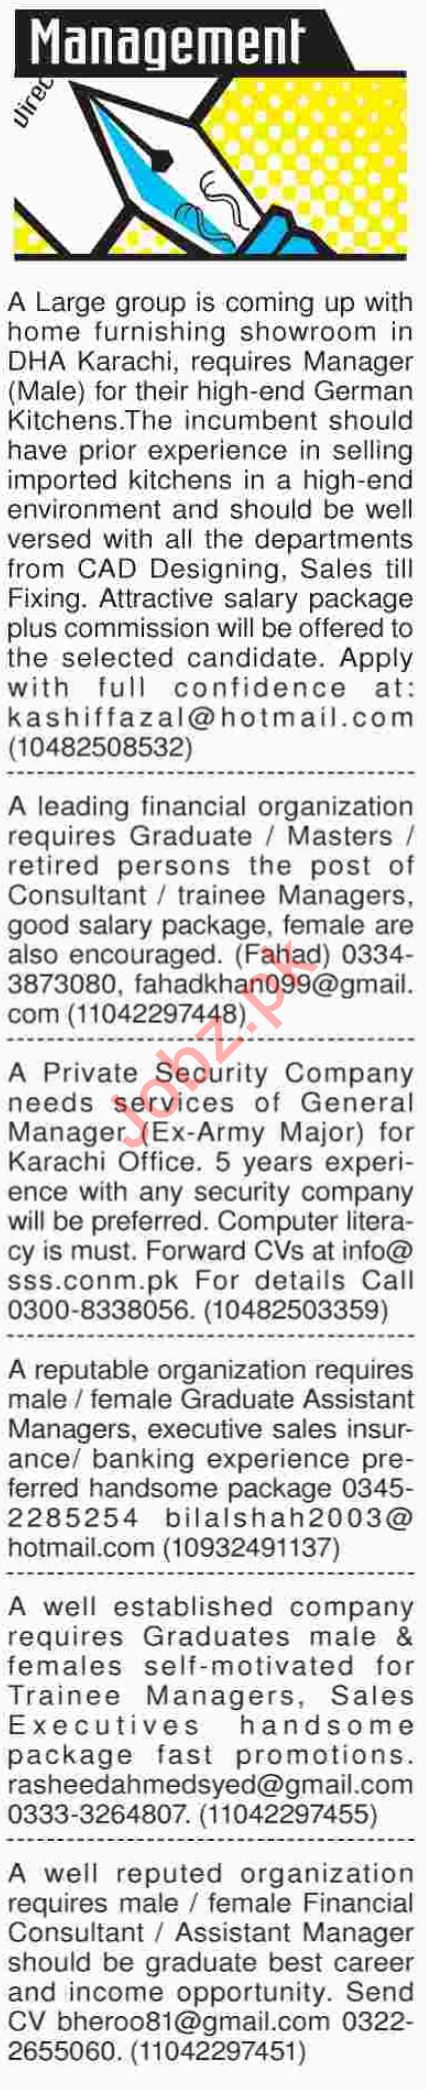 Dawn Sunday Management Classified Ads 21/10/2018